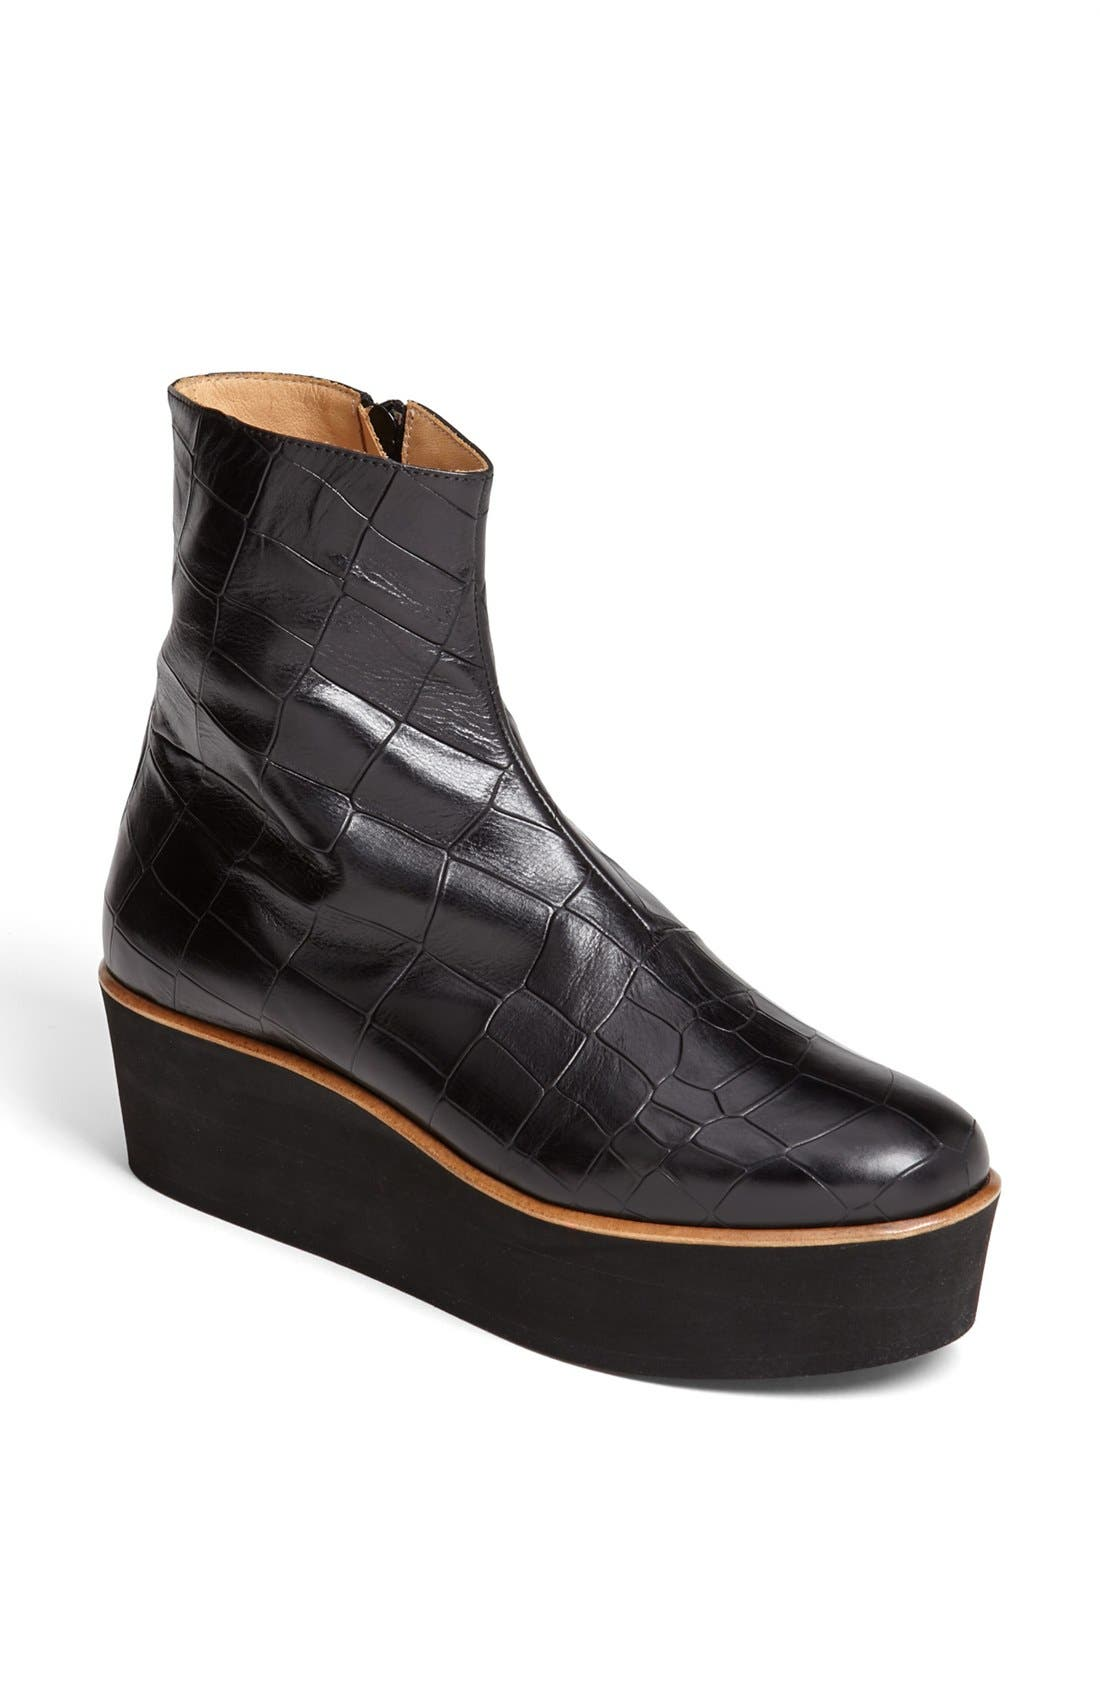 Alternate Image 1 Selected - MM6 Maison Margiela Platform Boot